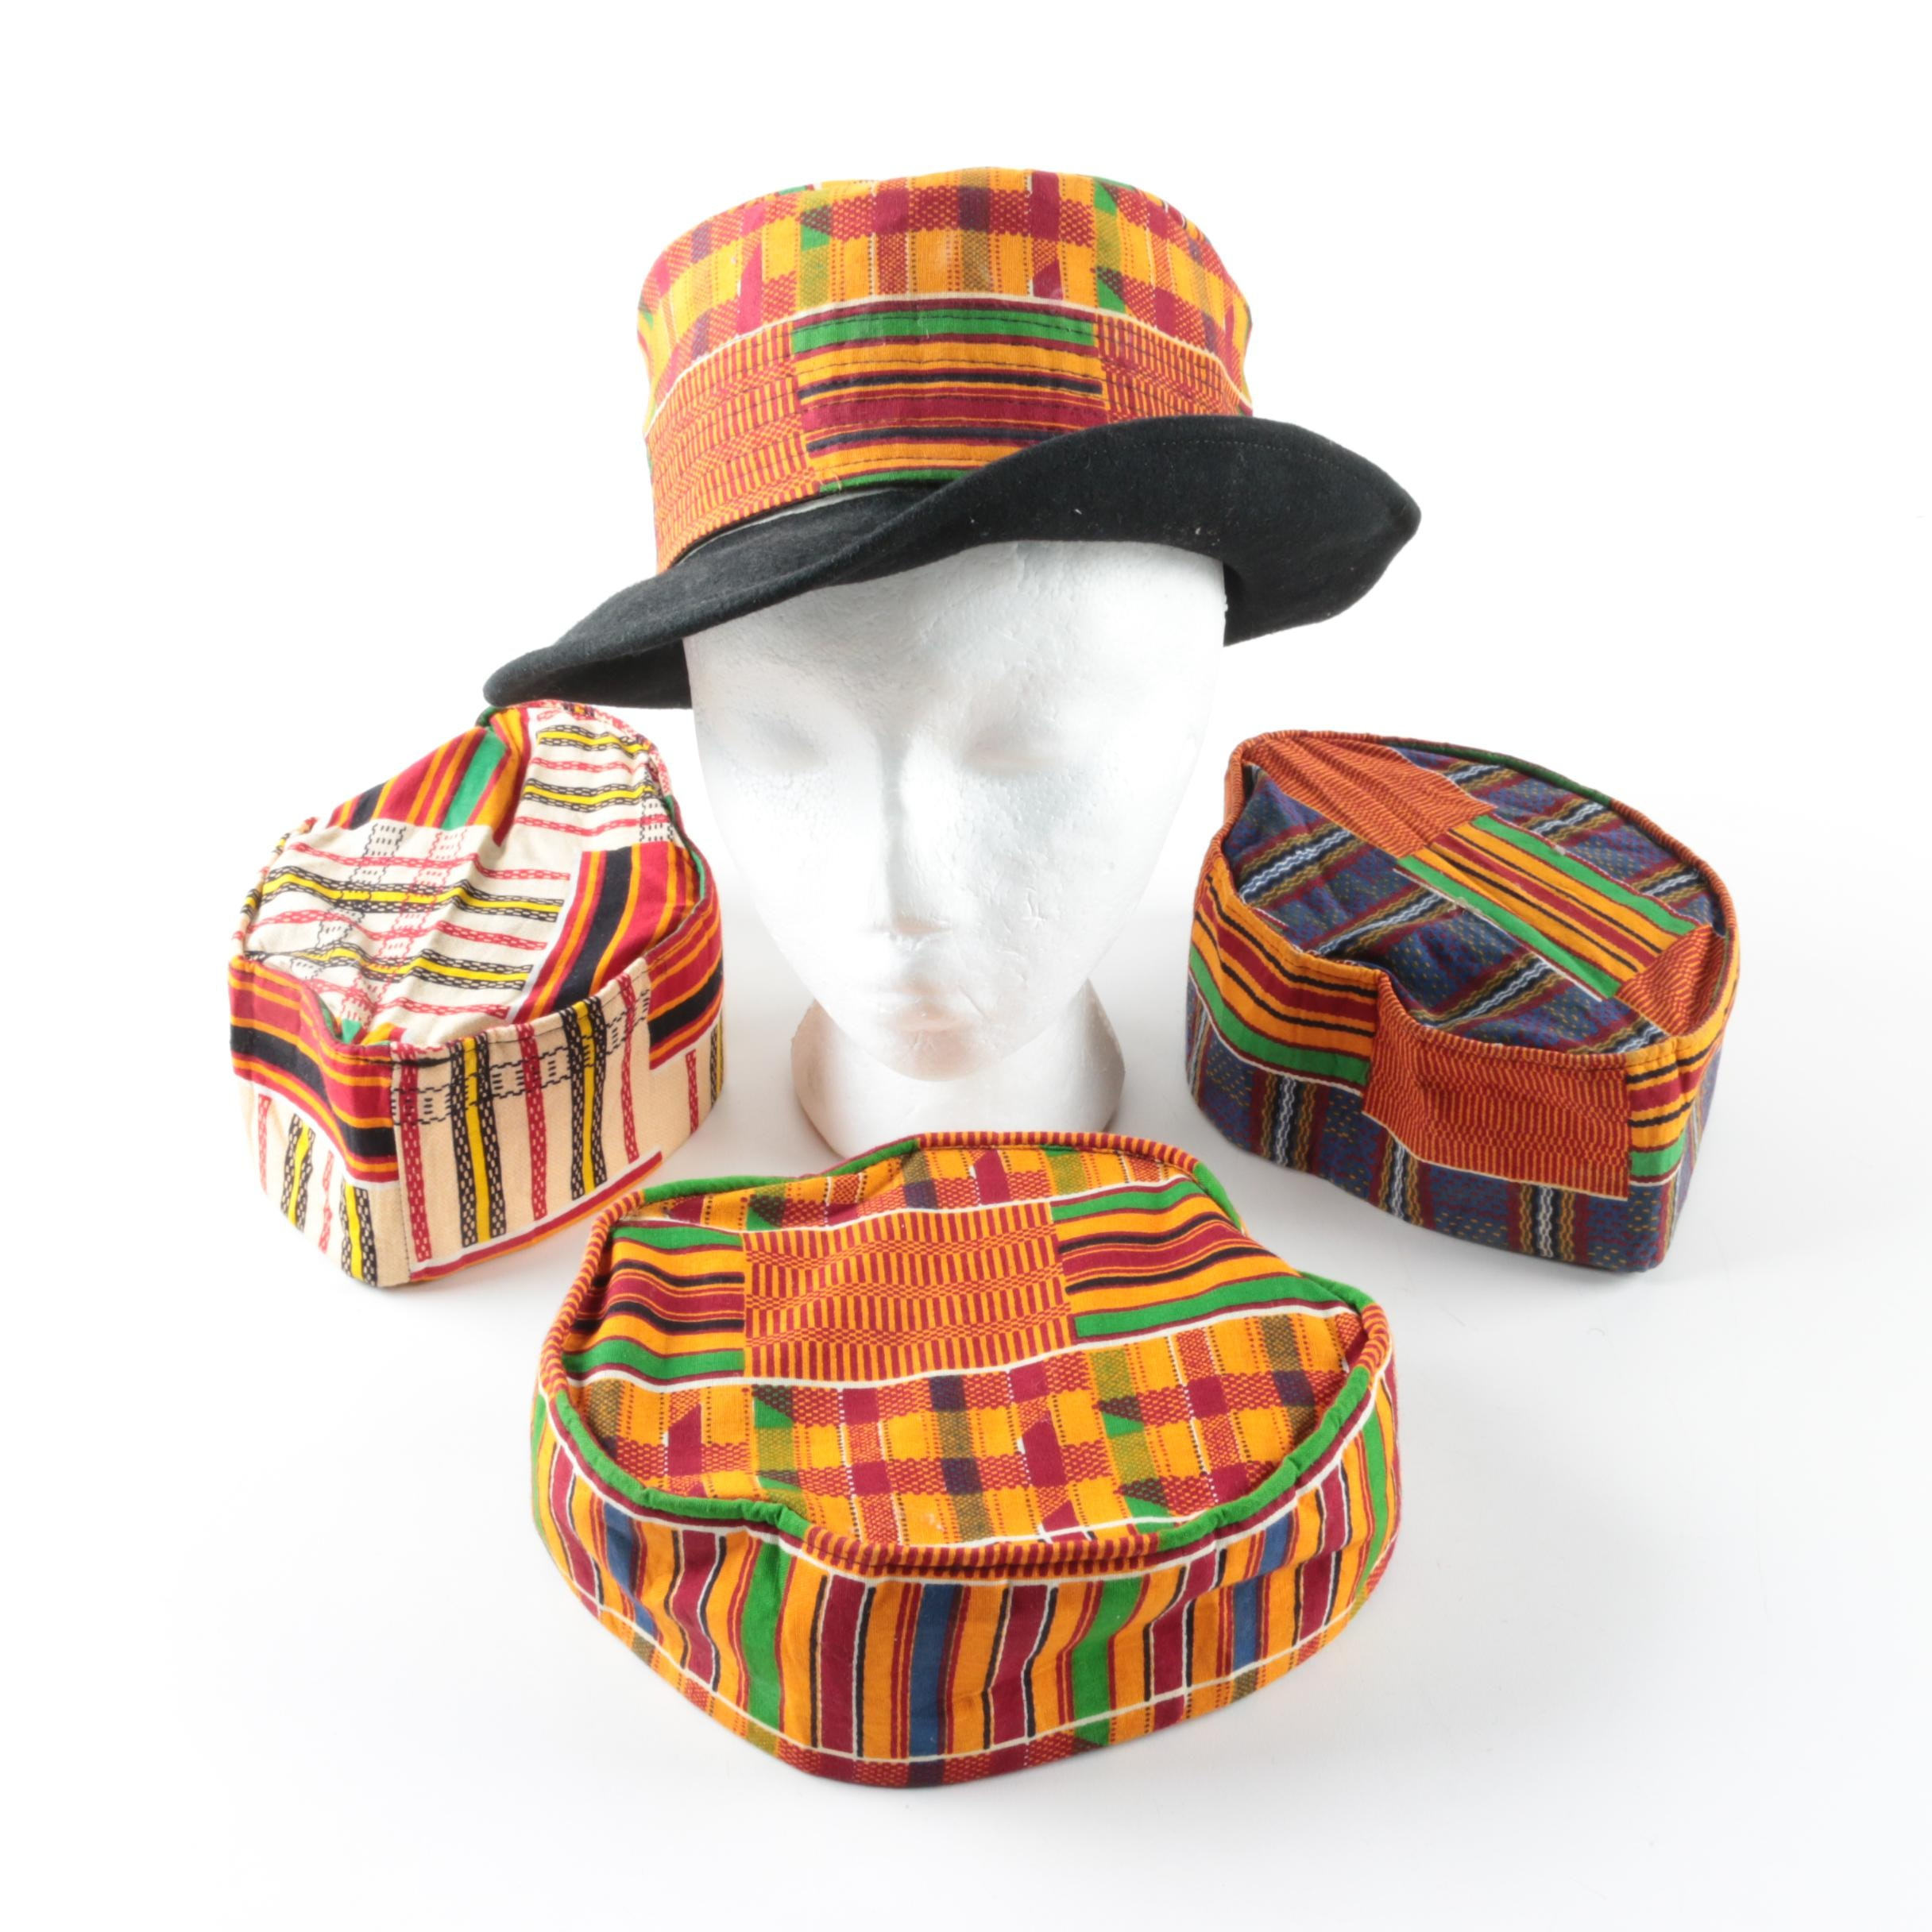 African Kente Cloth Hats